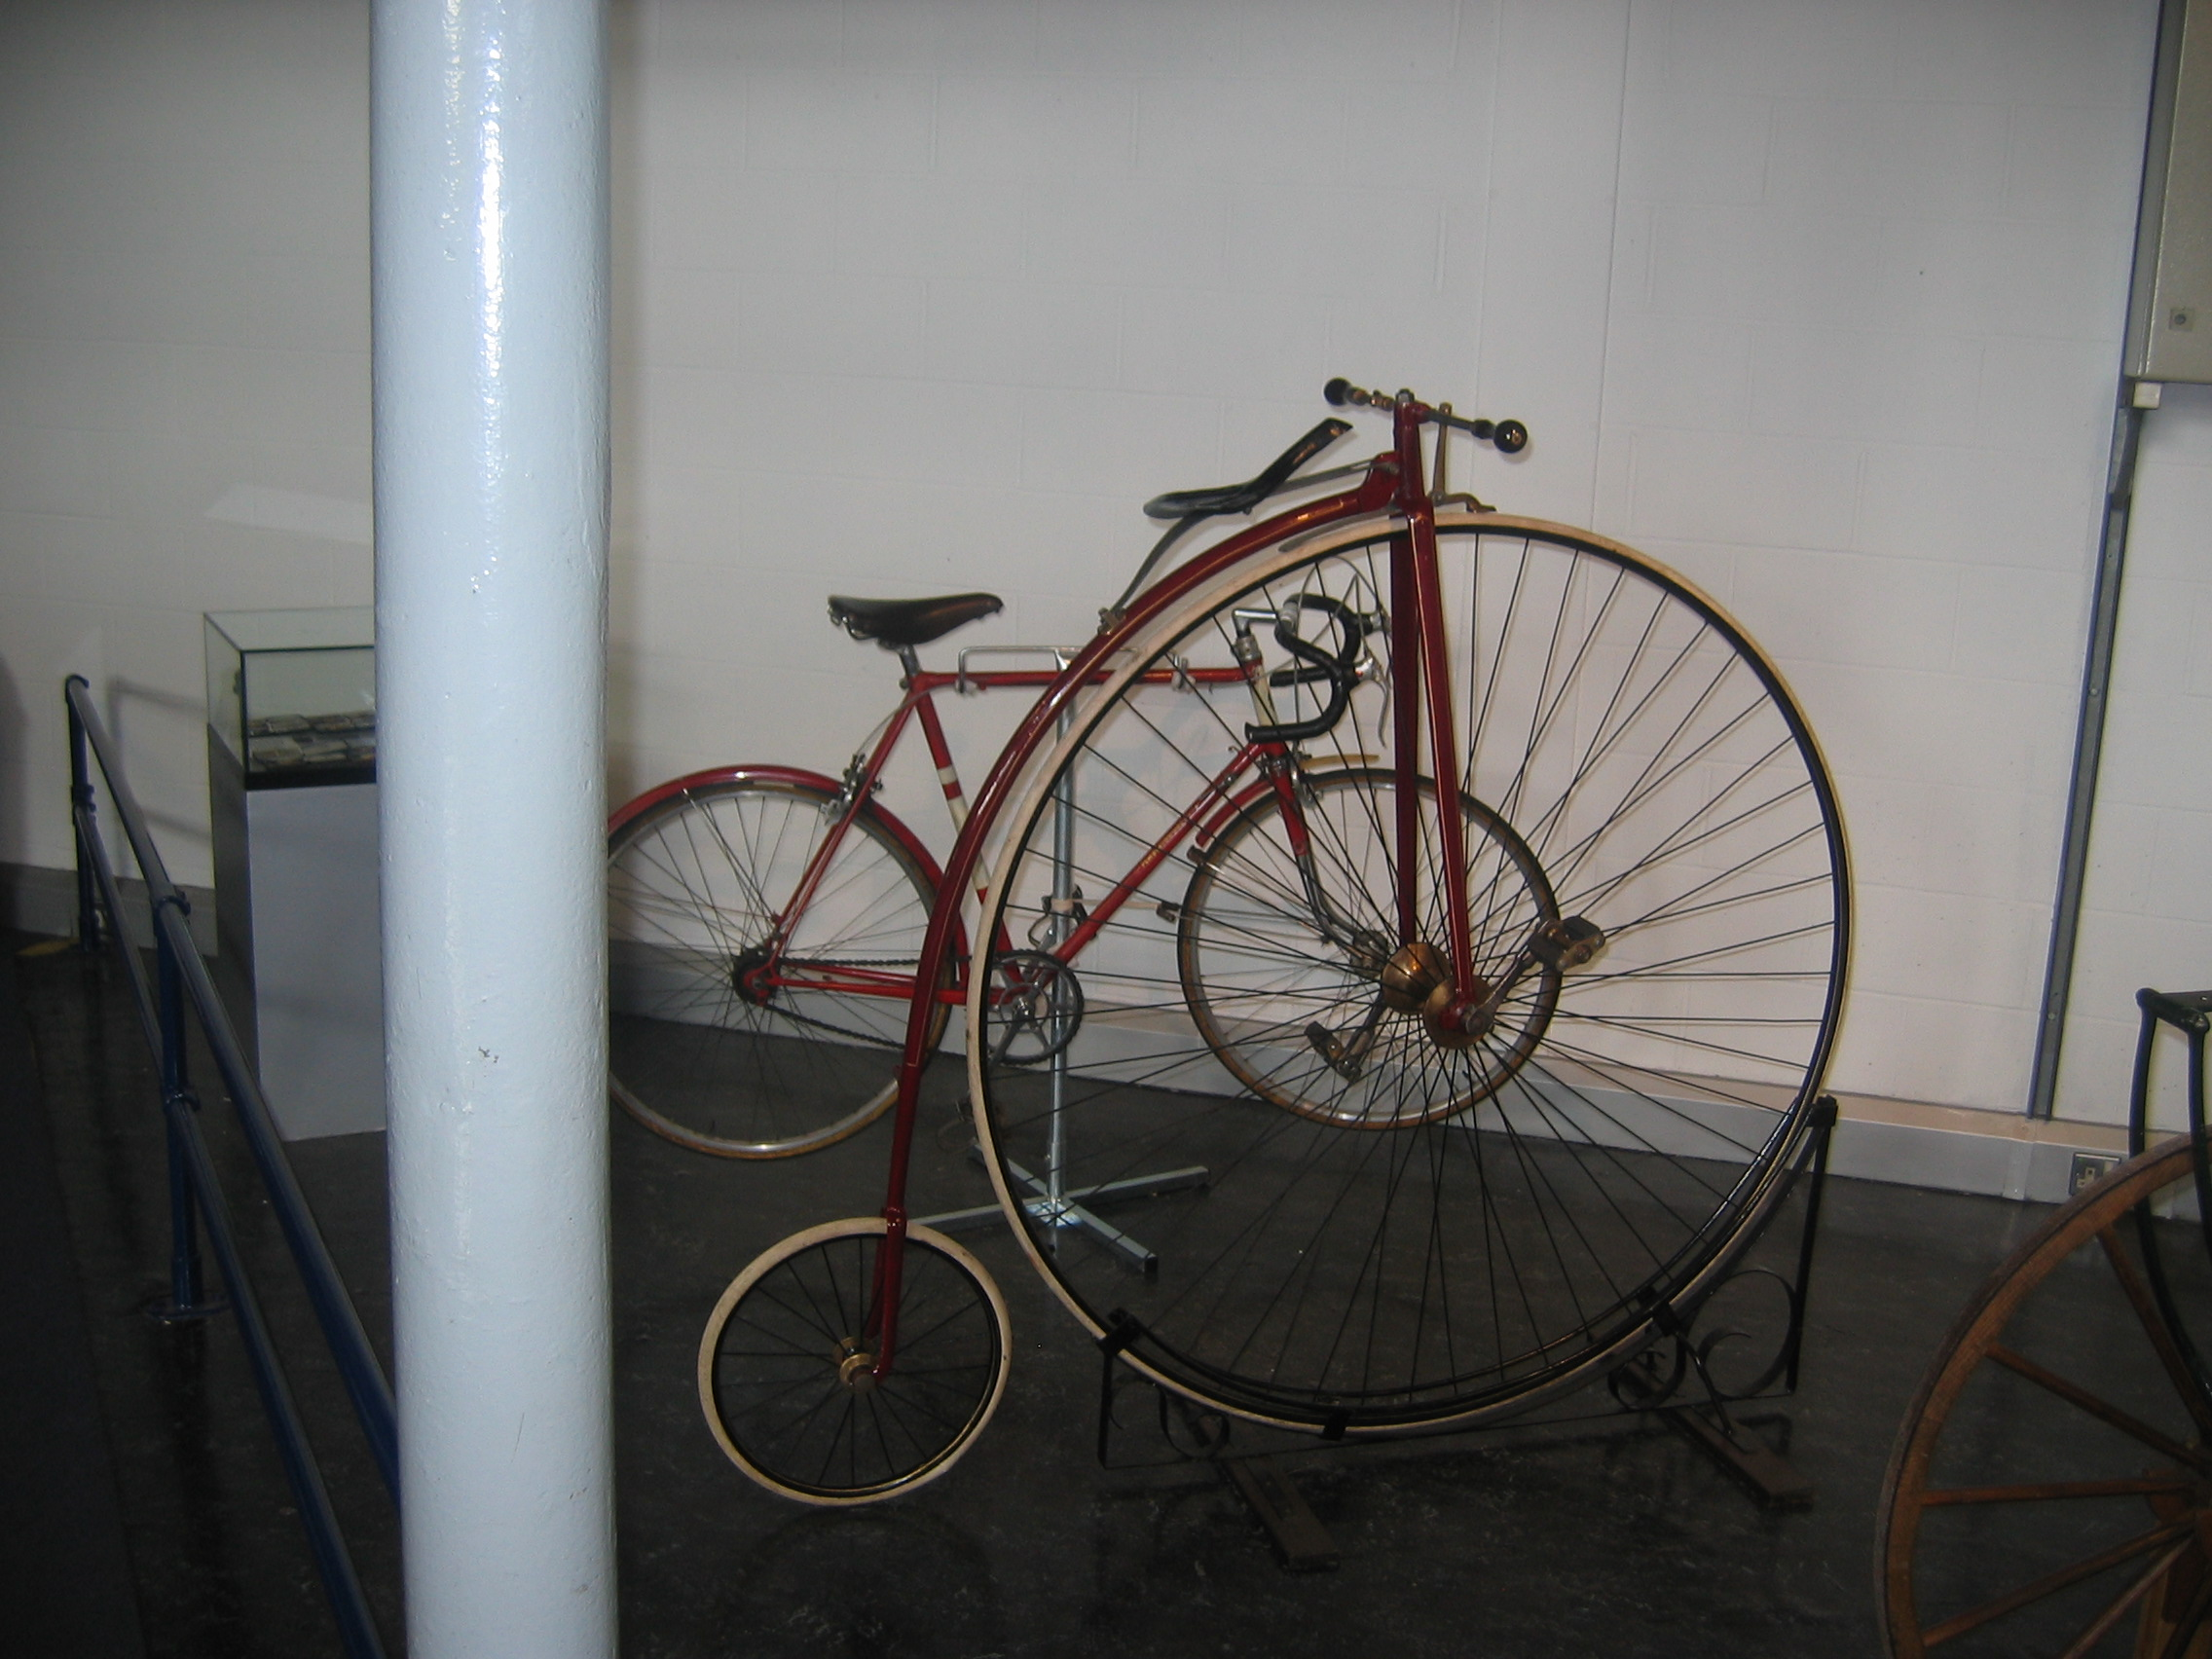 Photo taken by me – The MOSI Penny Farthing